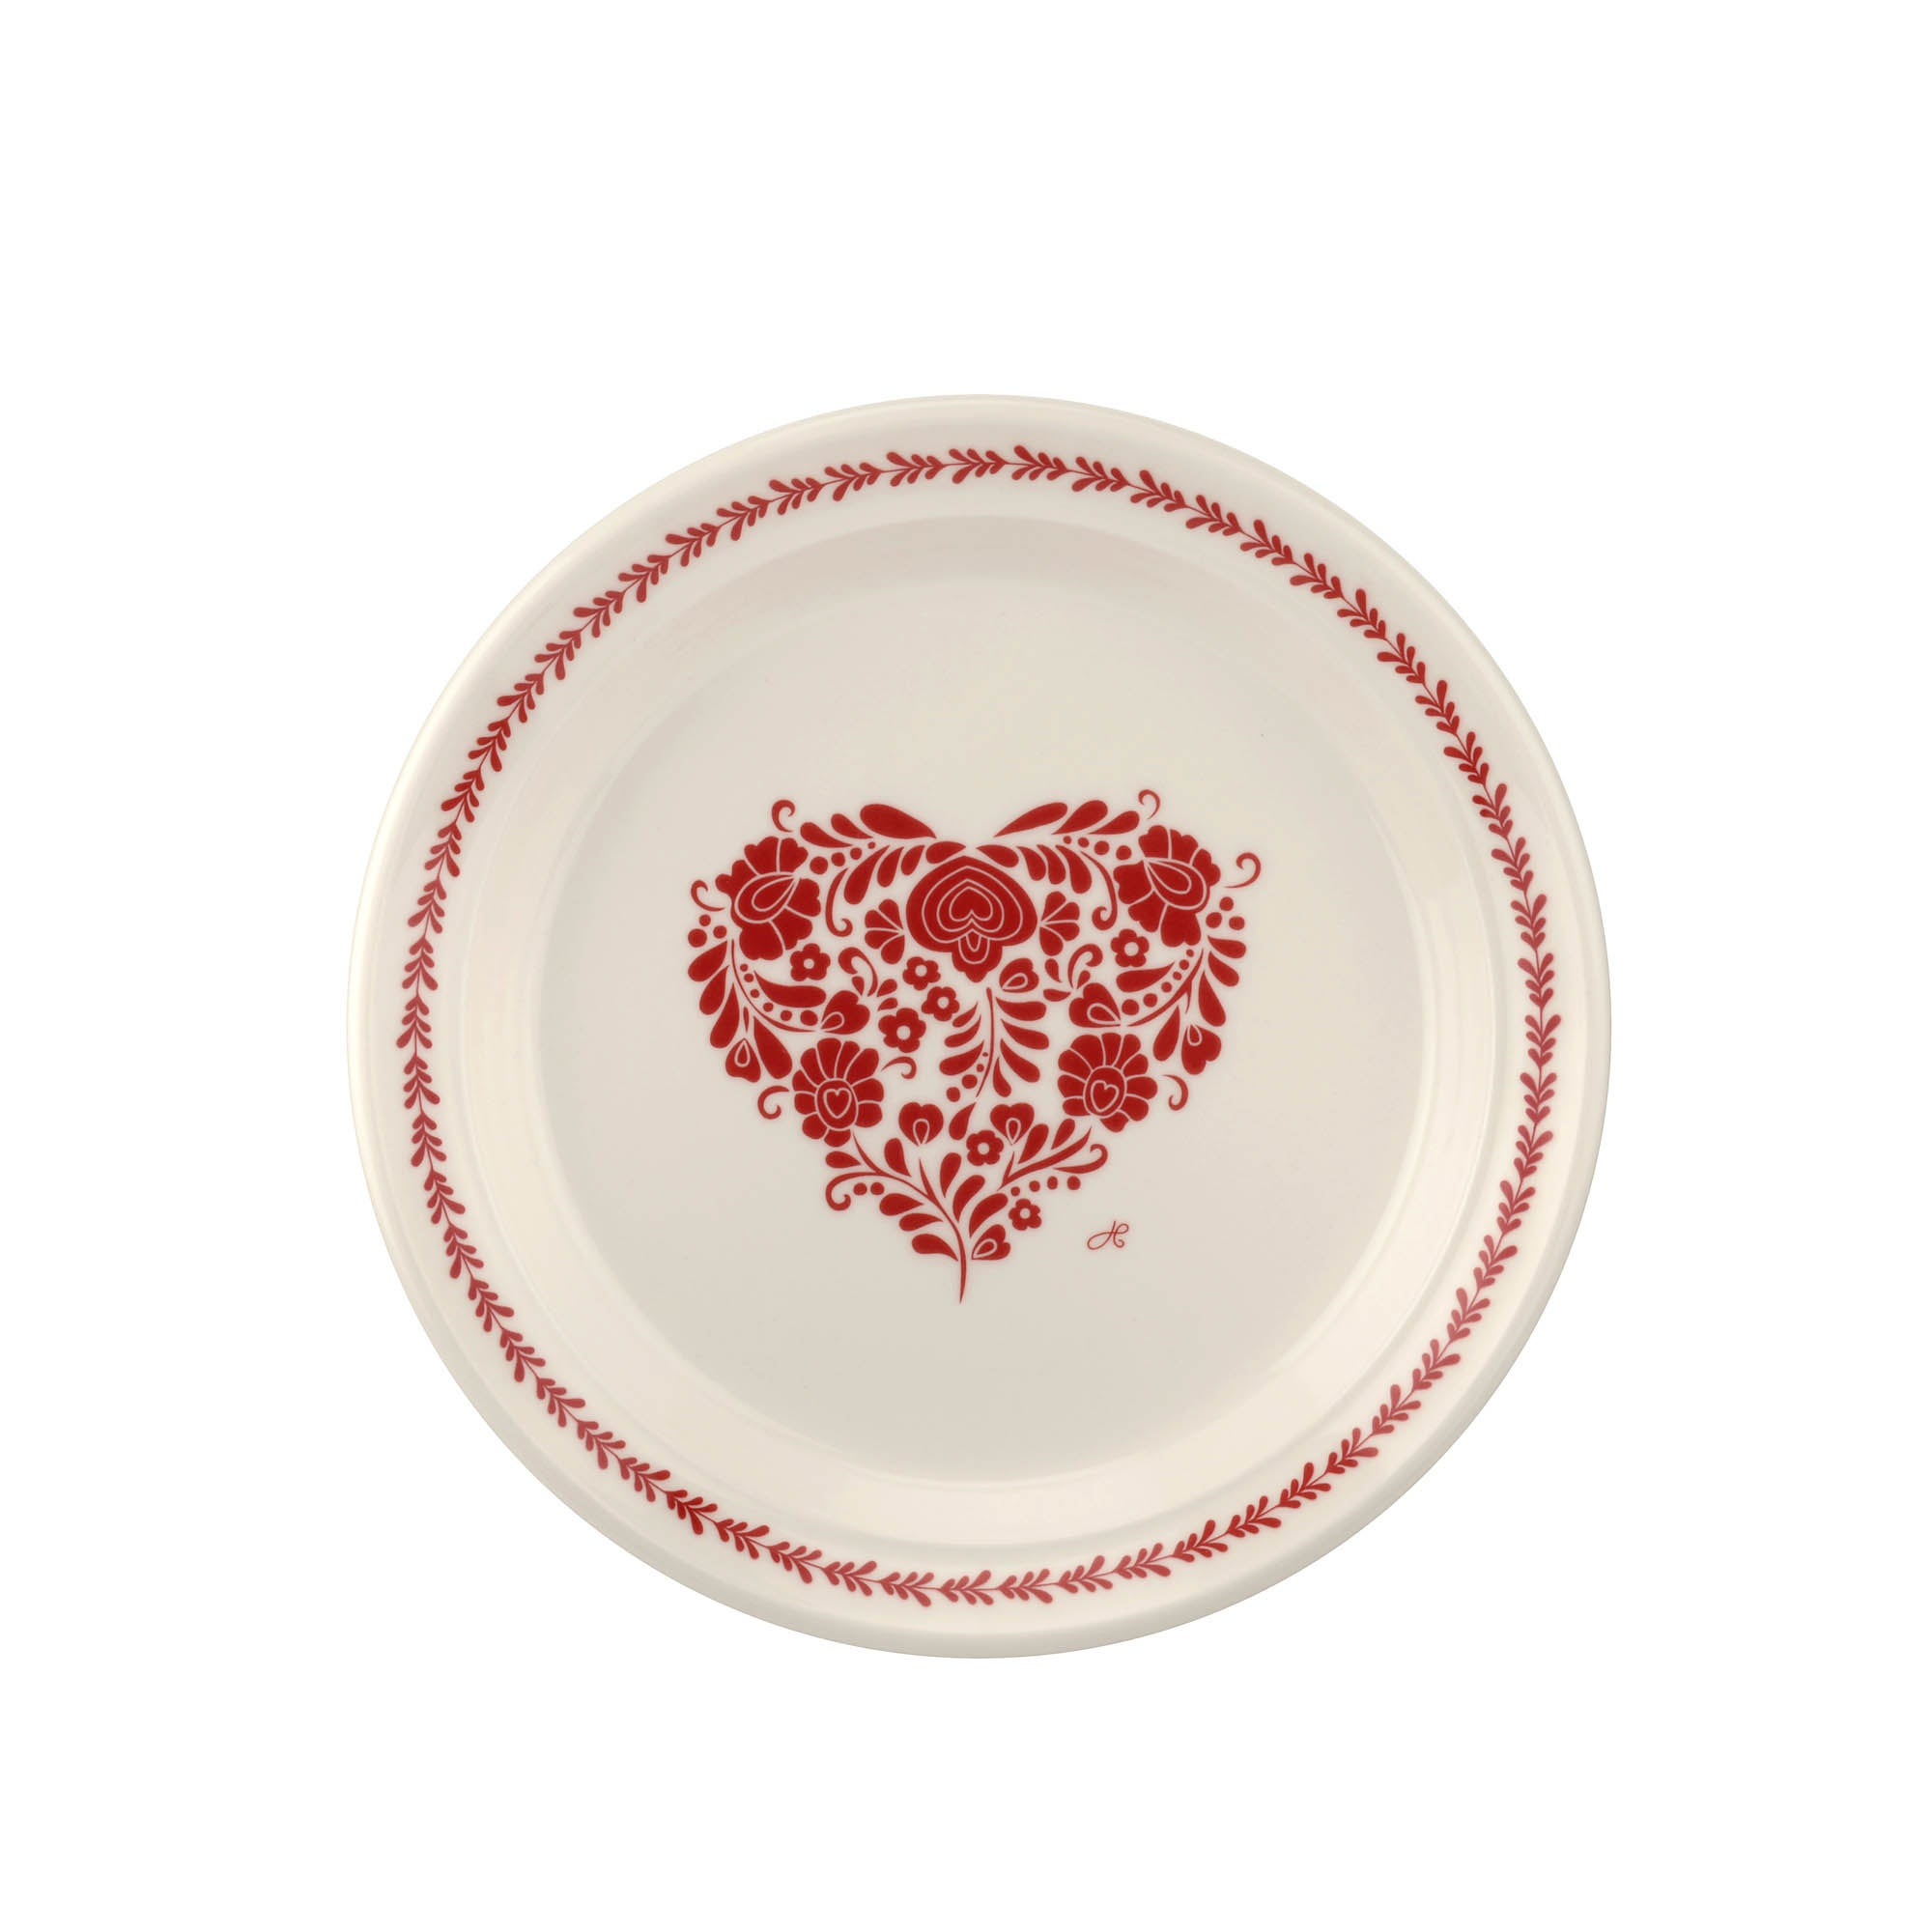 Photo of Jan constantine made by portmeirion heart red side plate red